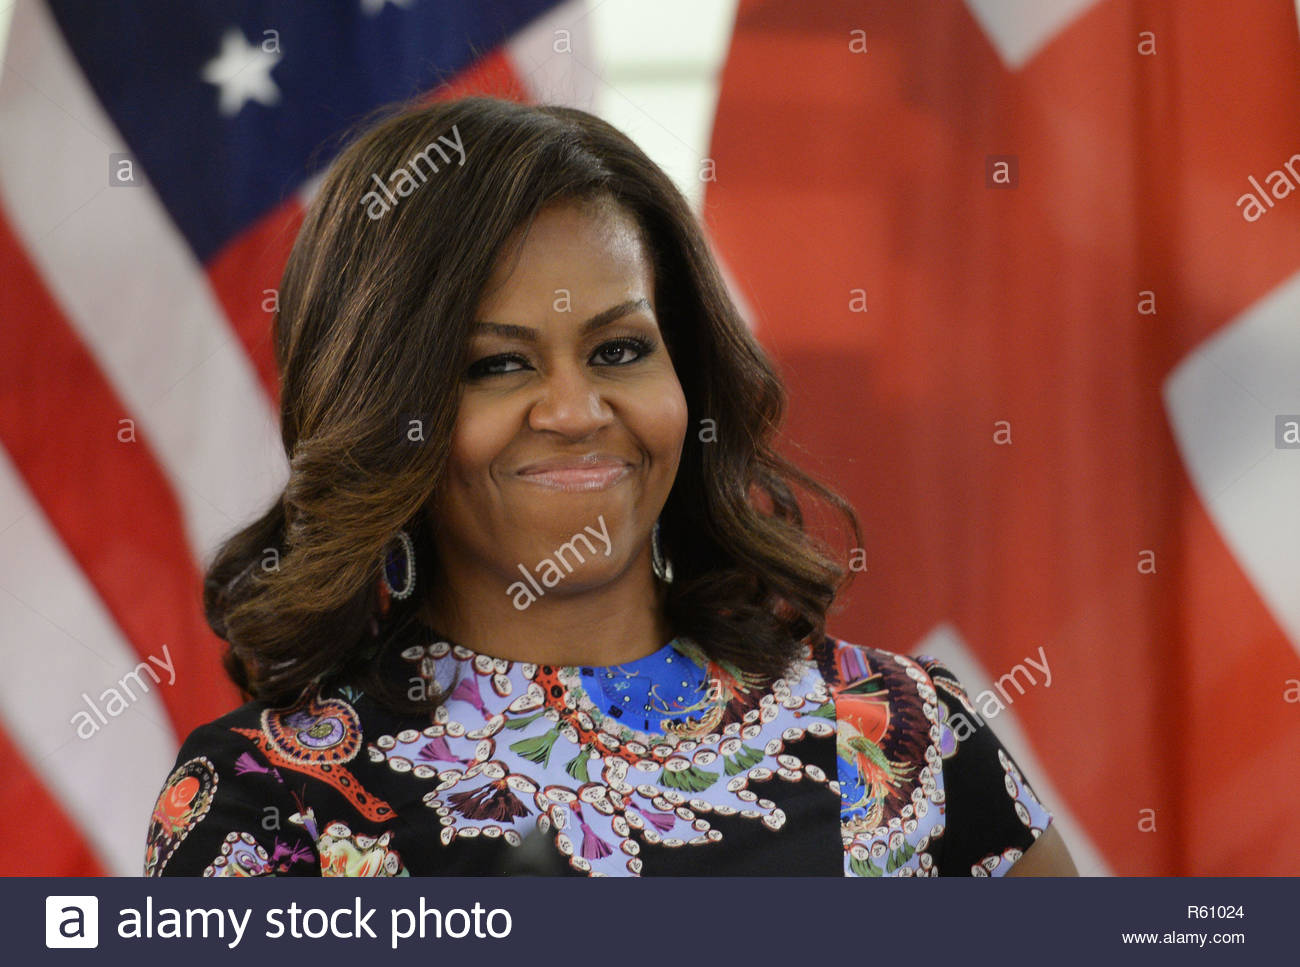 File photo dated 16/06/15 of former US first lady Michelle Obama, who is set to address a live audience about her personal journey to becoming First Lady and her time in the White House. The lawyer and wife of former president Barack Obama will speak to a London audience about her memoir Becoming. Stock Photo